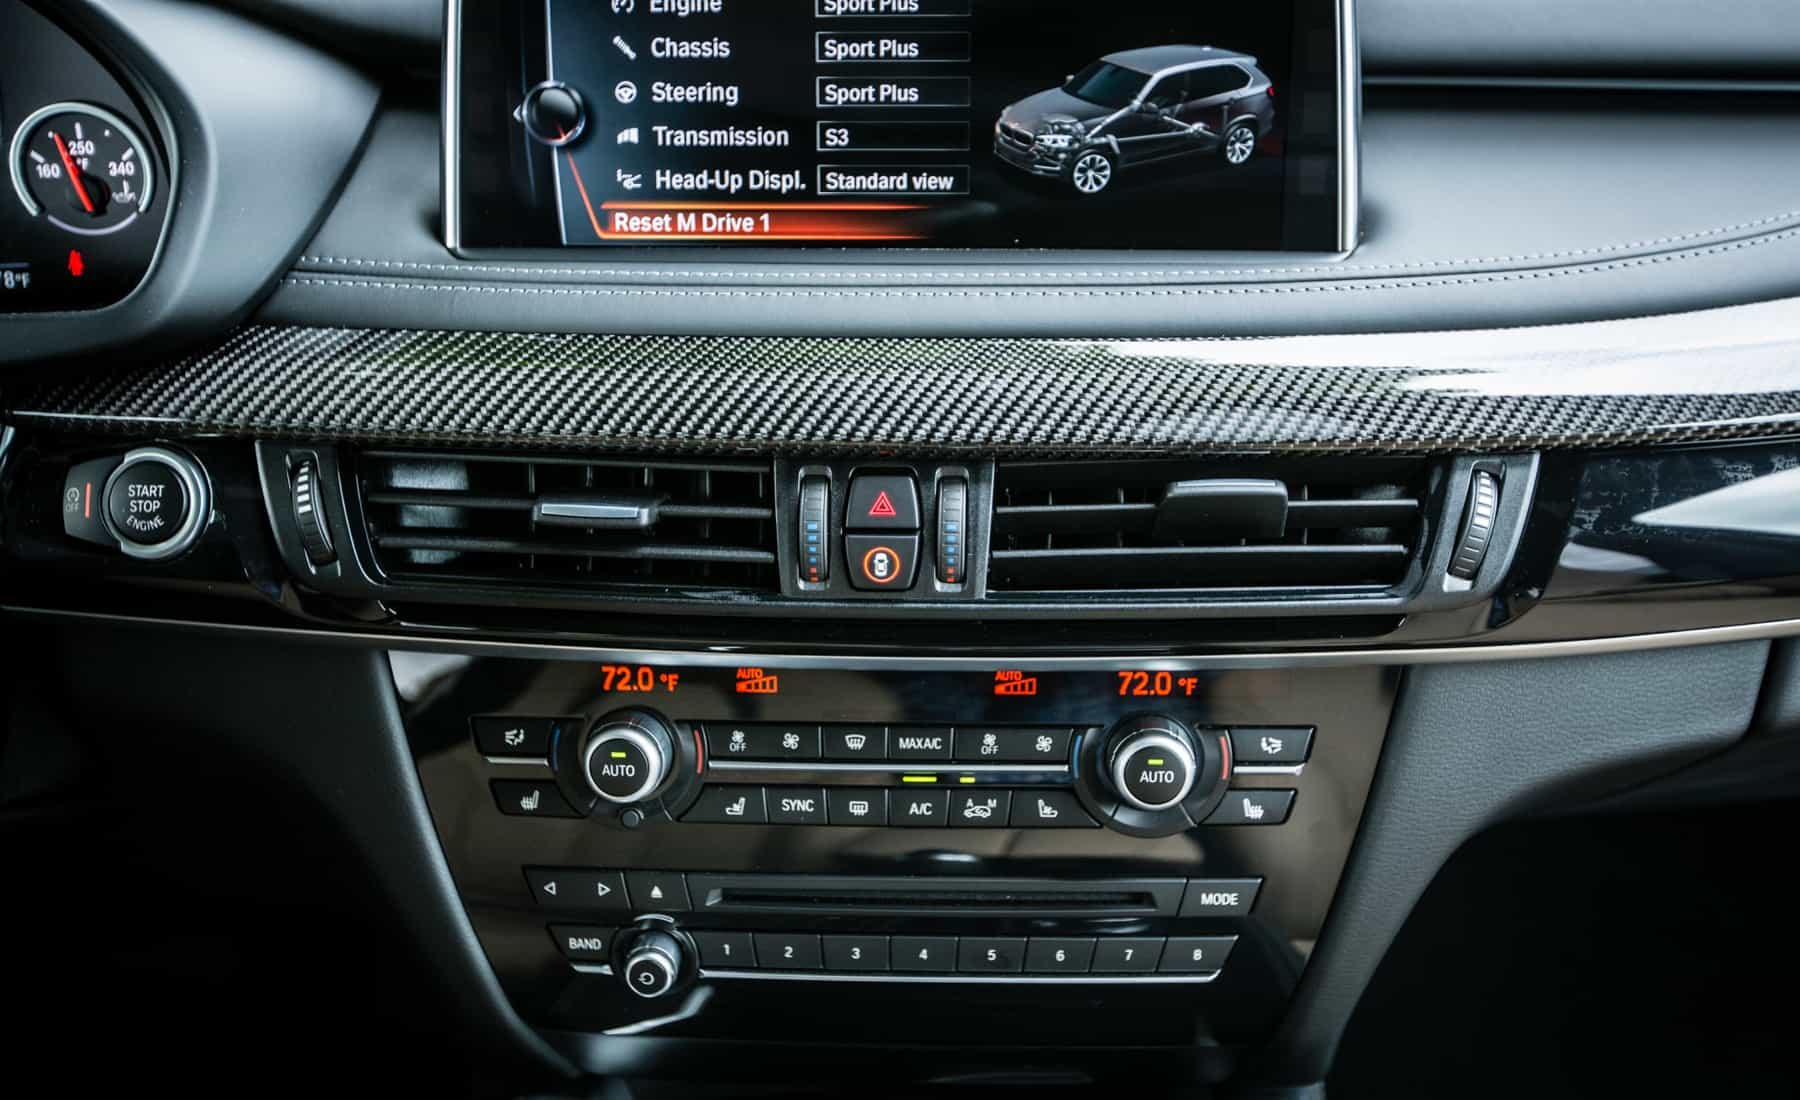 2017 BMW X5 M Interior View Center Screen And Climate Control (Photo 18 of 35)